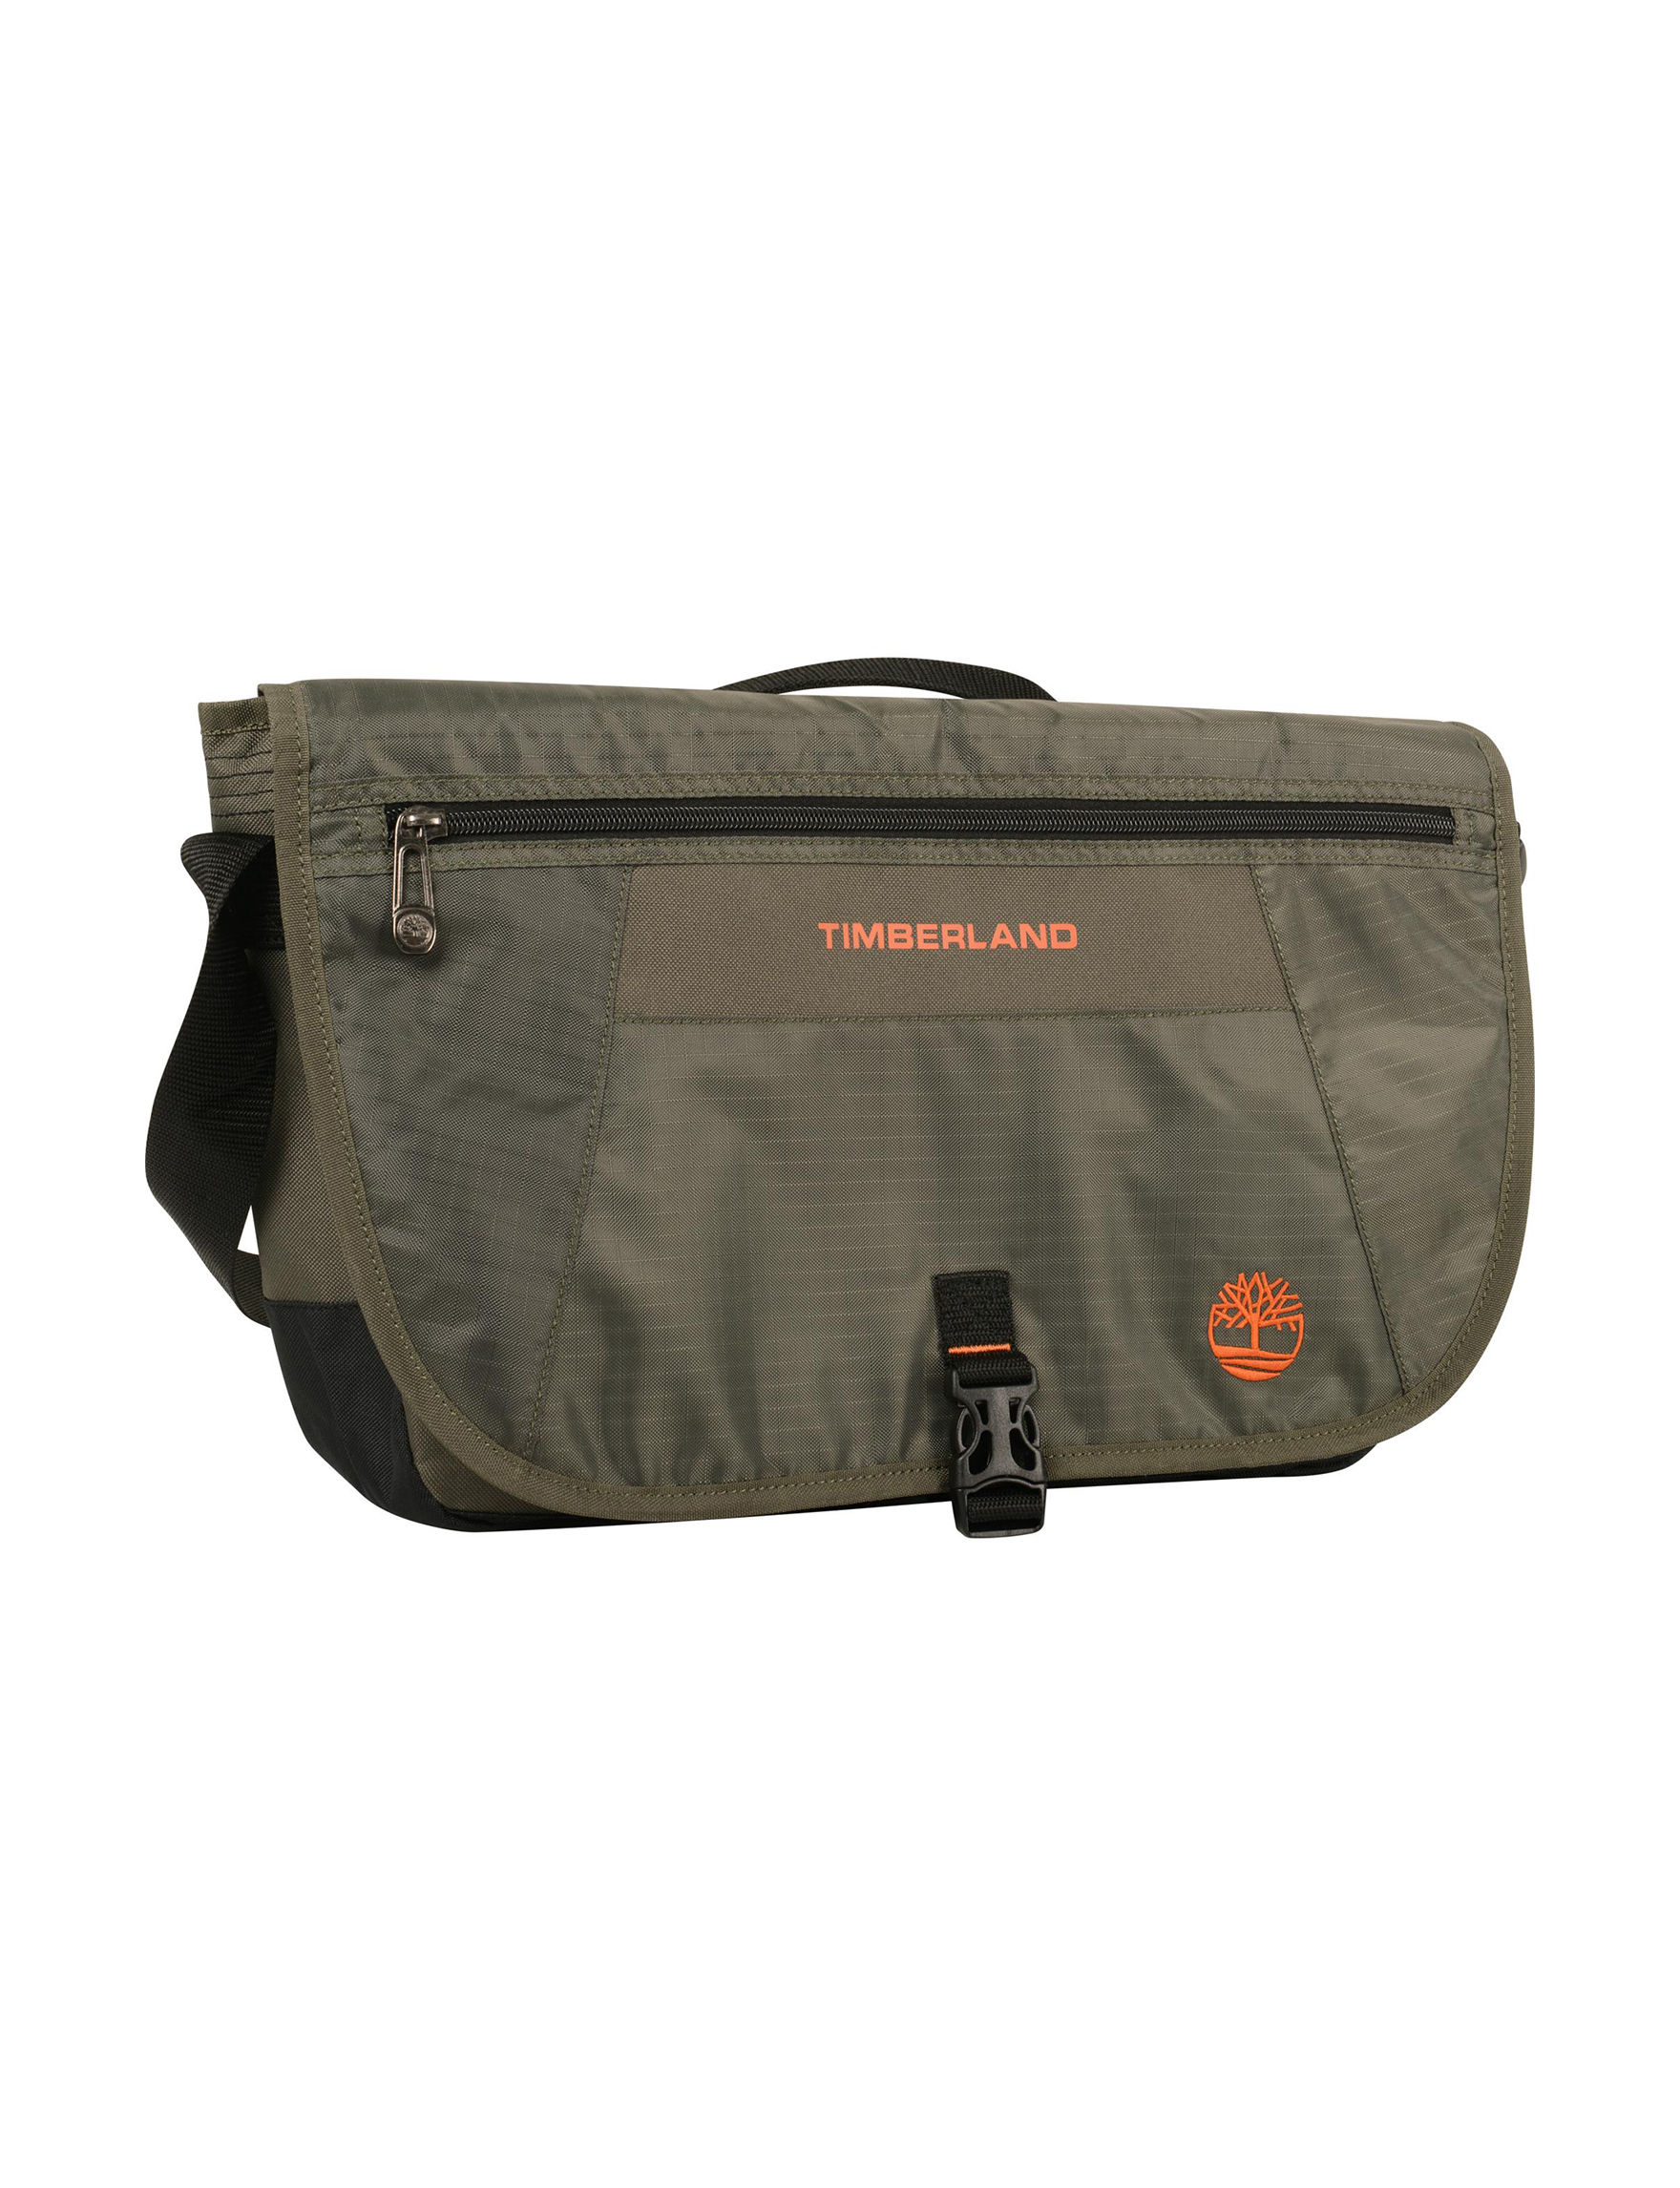 Timberland Olive Carry On Luggage Laptop & Messenger Bags